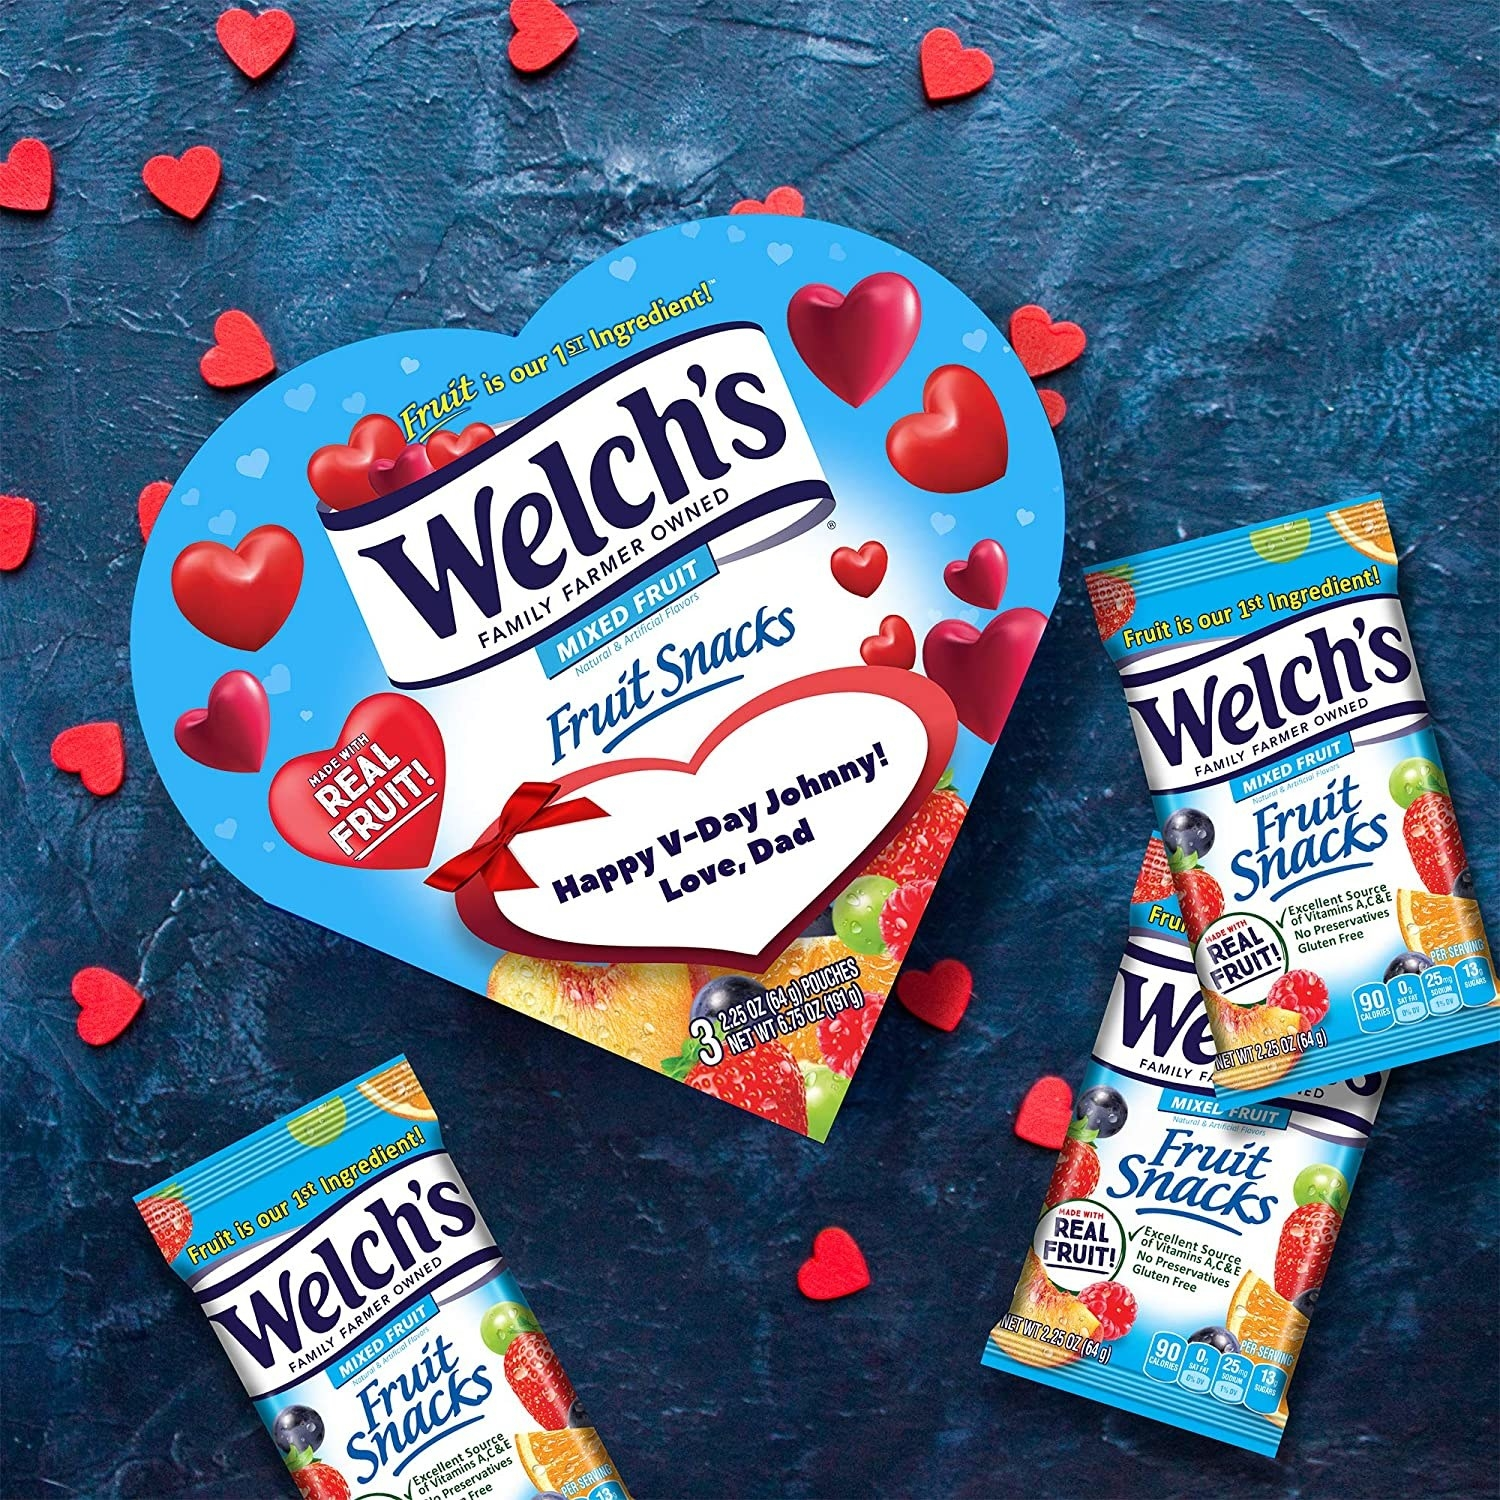 welch's fruit snack packs around heart shaped box with room for personal message